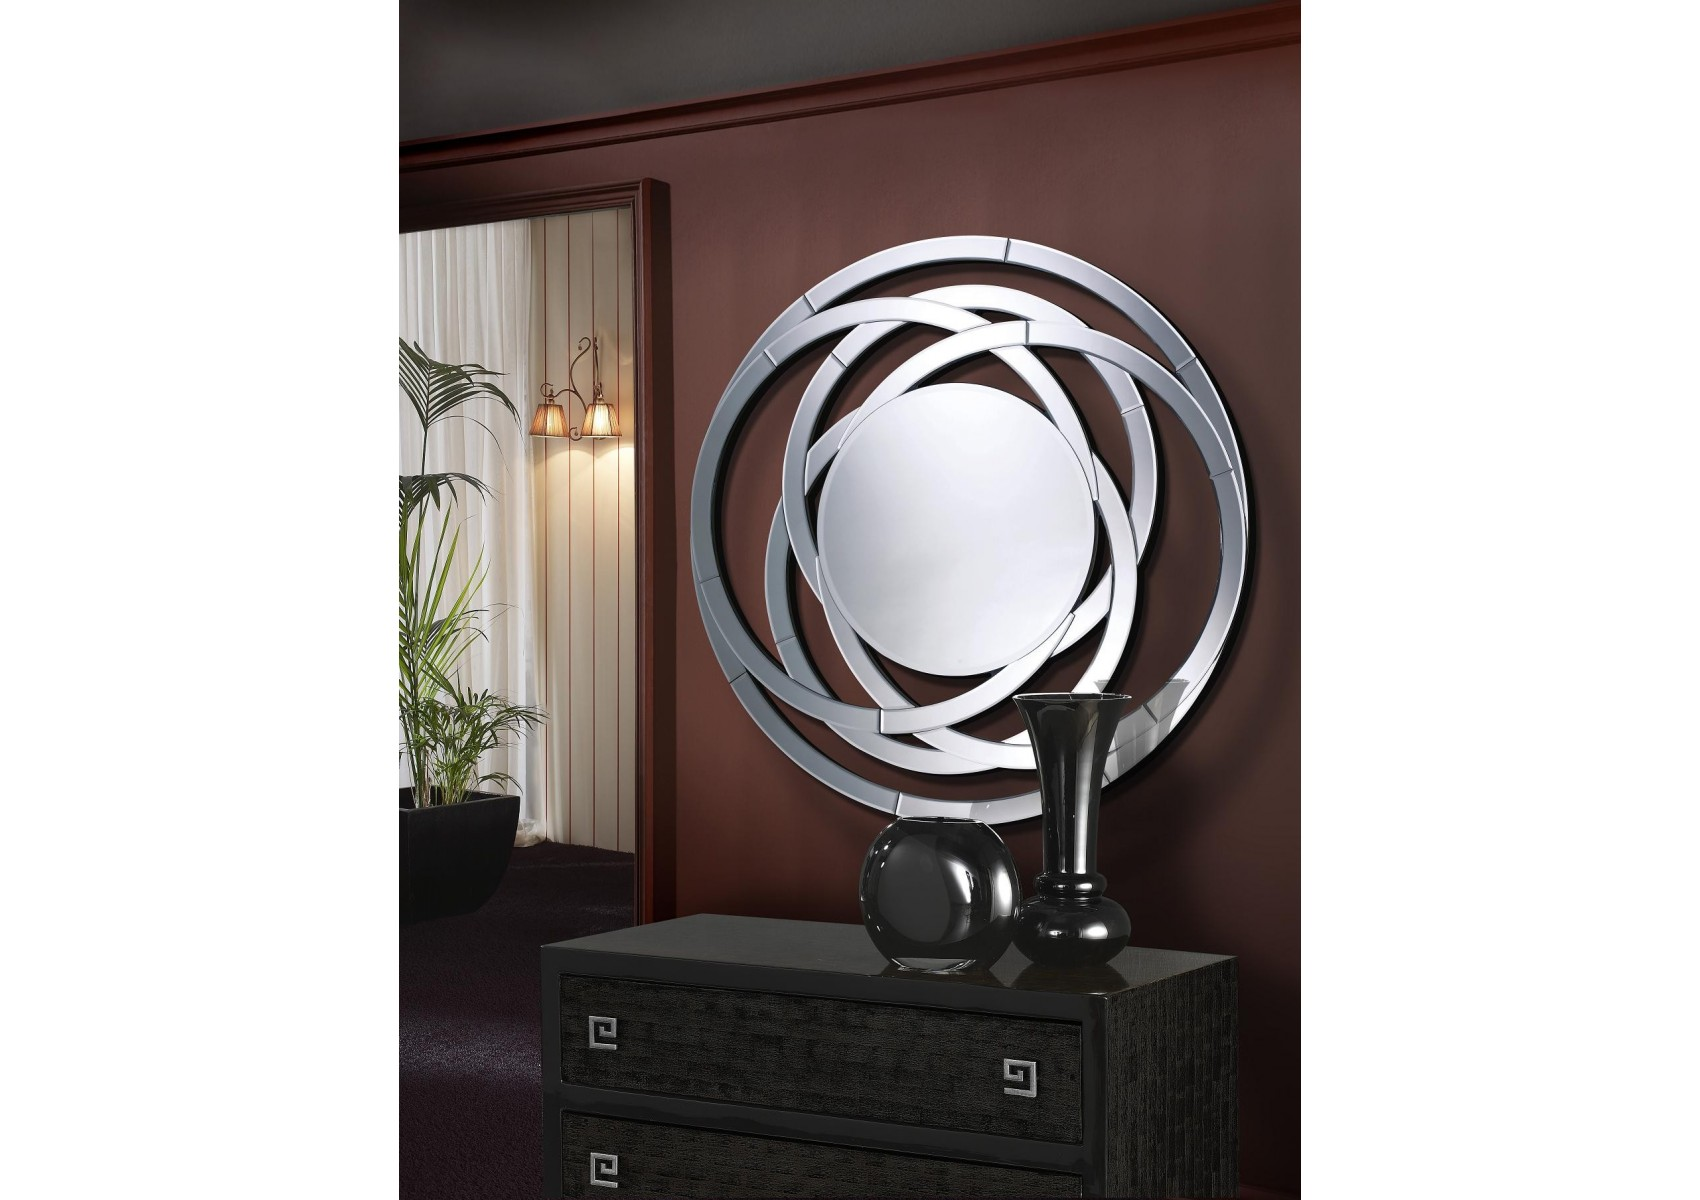 Miroir rond design de la collection aros de chez schuller for Miroir rond design